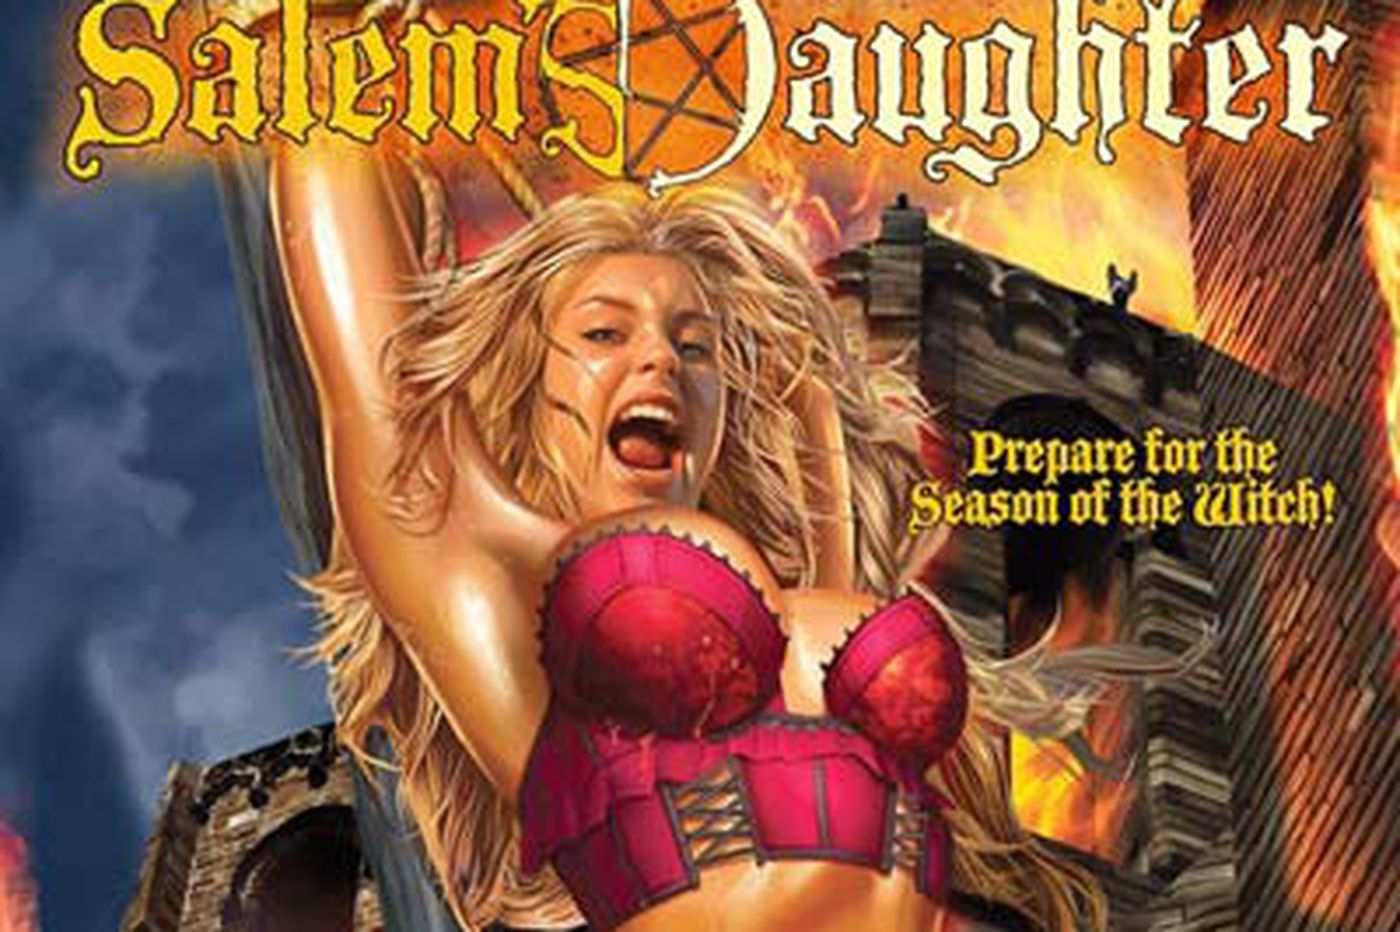 'Salem's Daughter' is one of the year's best